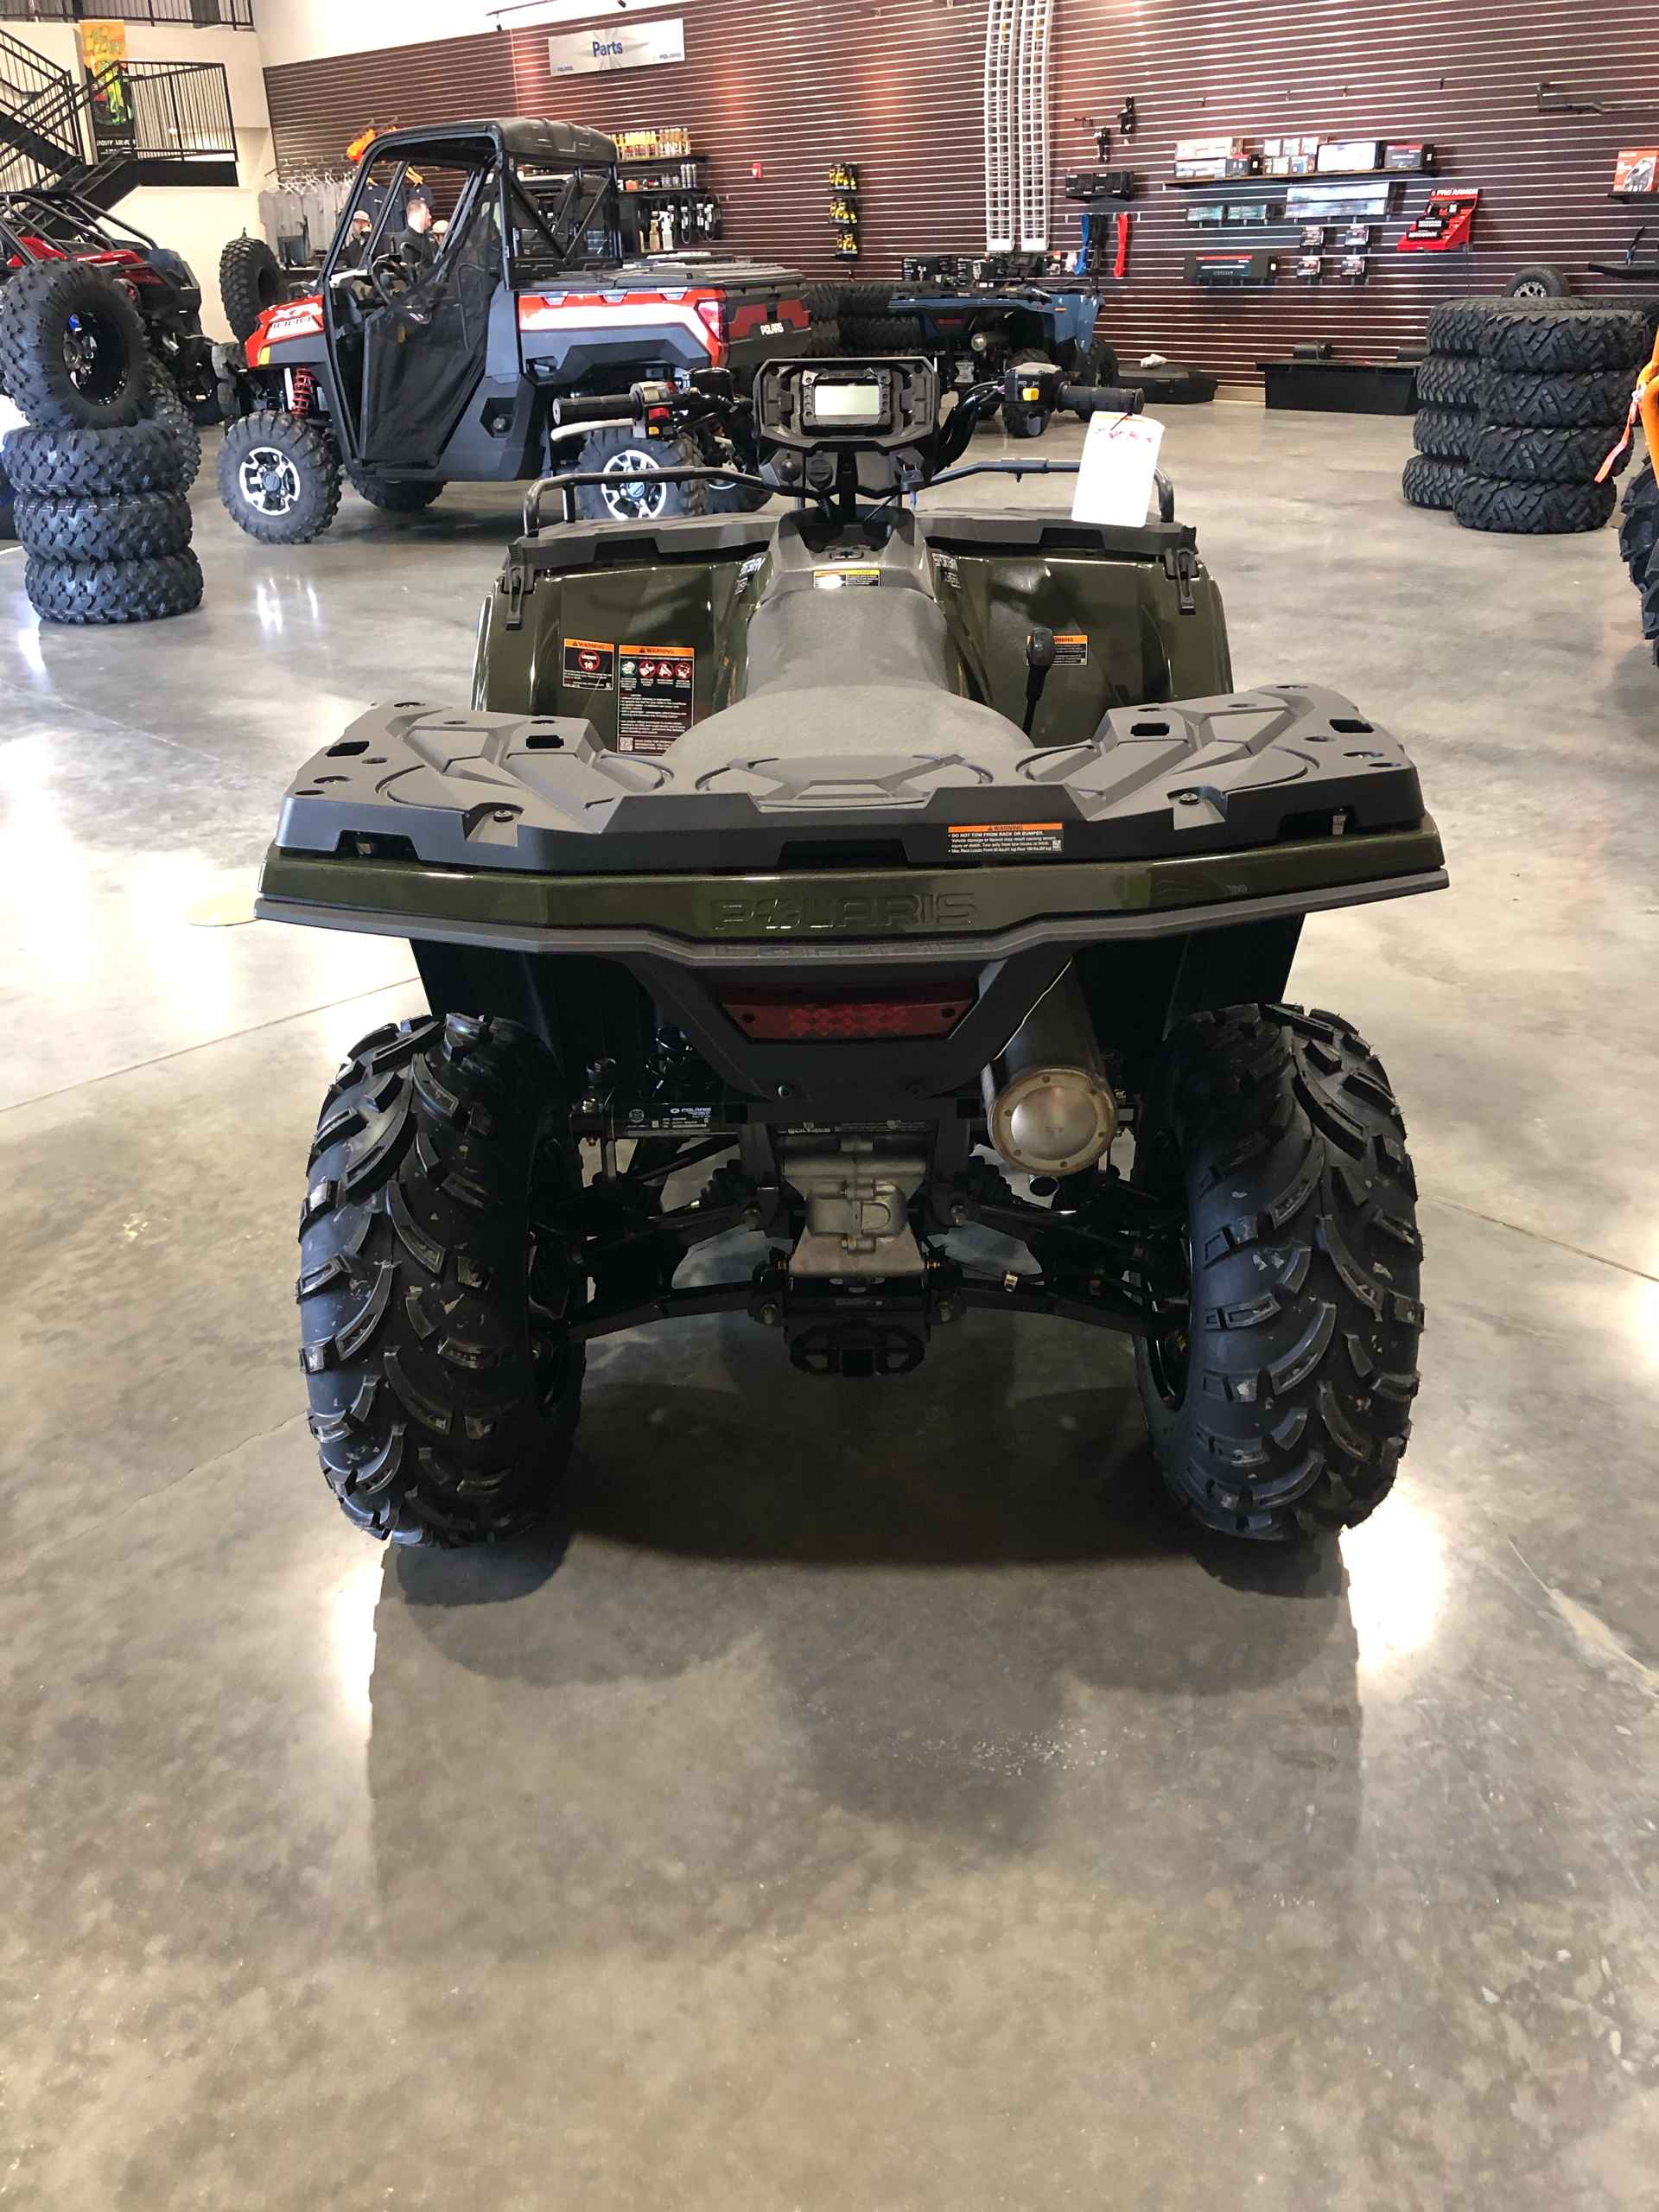 2021 Polaris Sportsman 450 H.O. in Conway, Arkansas - Photo 4